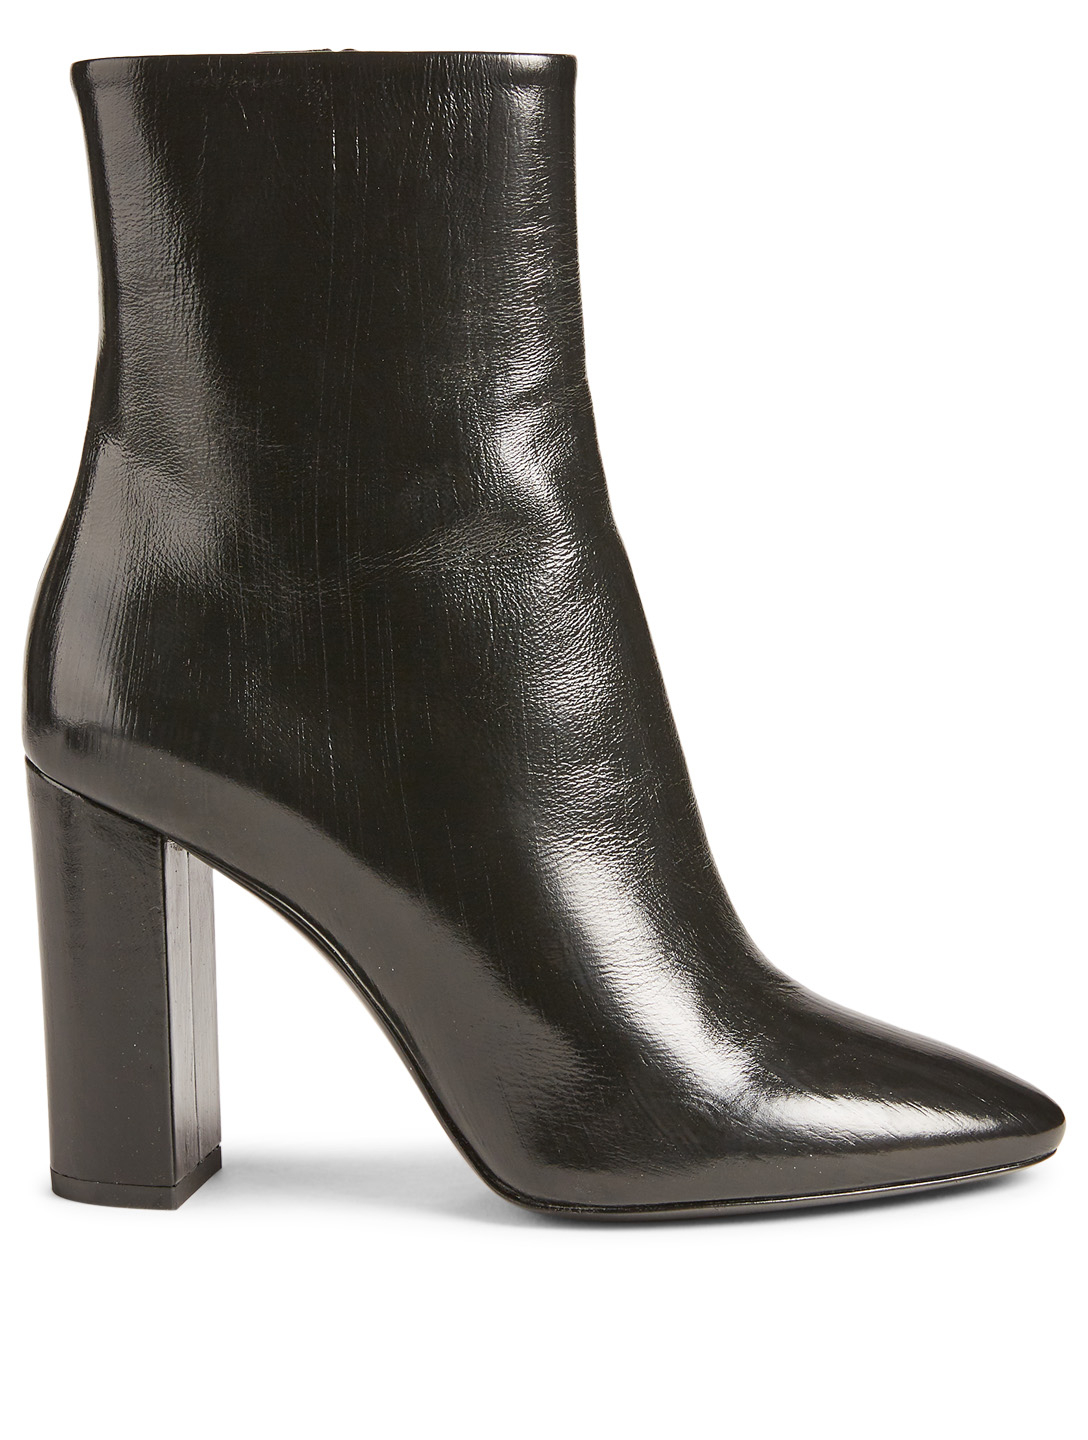 SAINT LAURENT Lou Patent Leather Ankle Boots Women's Black